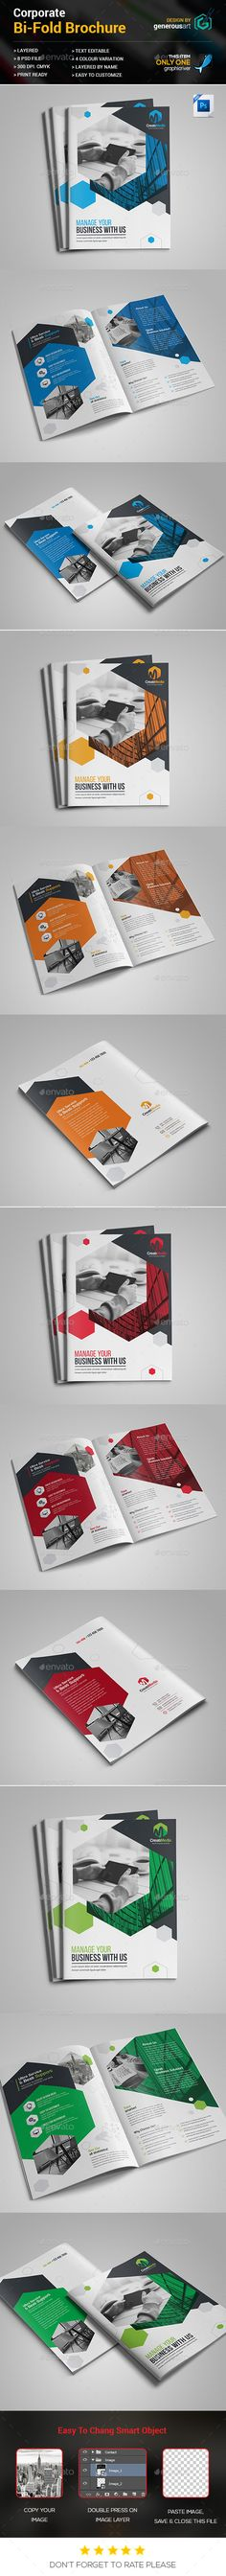 Bi-Fold Brochure Template - Corporate Brochures Download here : https://graphicriver.net/item/bifold-brochure-template/19455204?s_rank=67&ref=Al-fatih